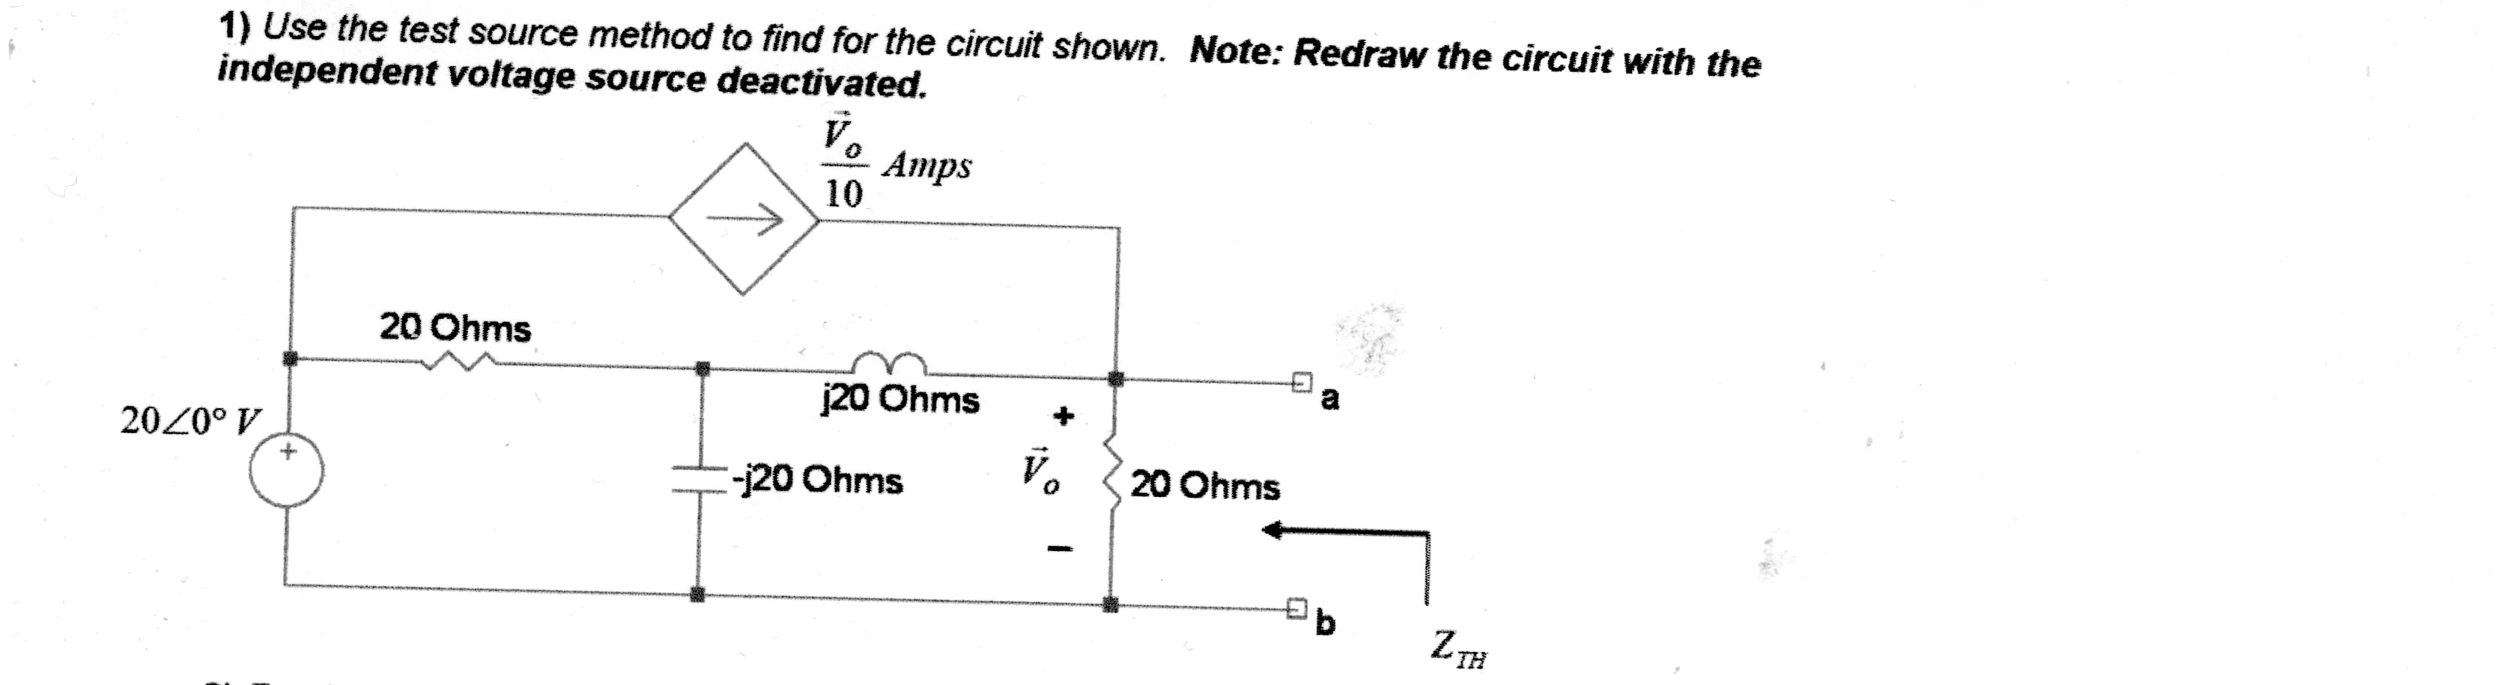 Use the test source method to find for the circuit